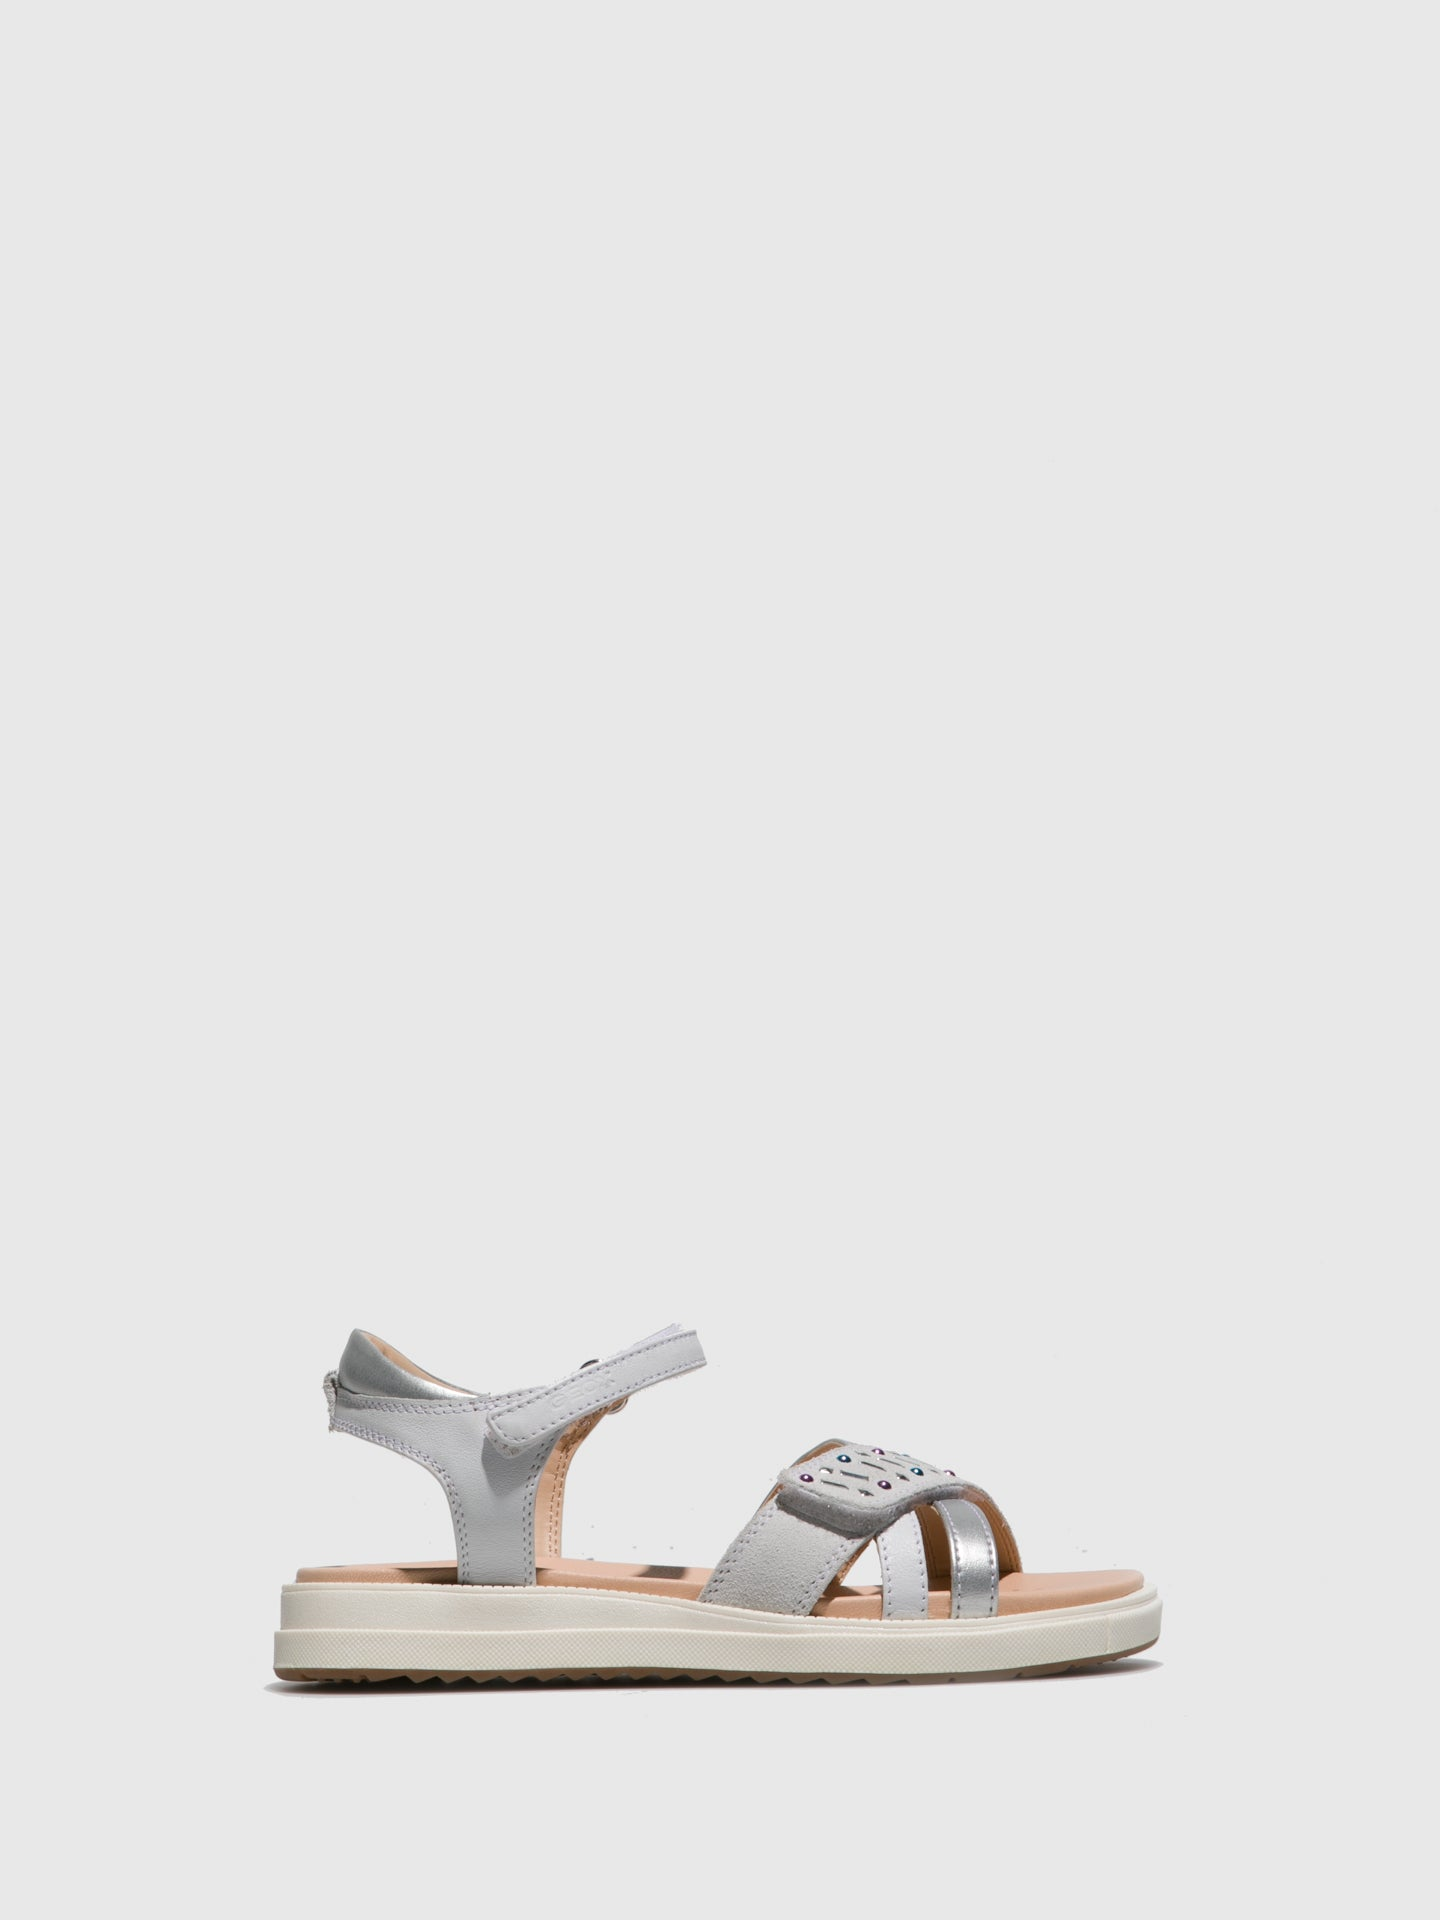 Geox White Ankle Strap Sandals